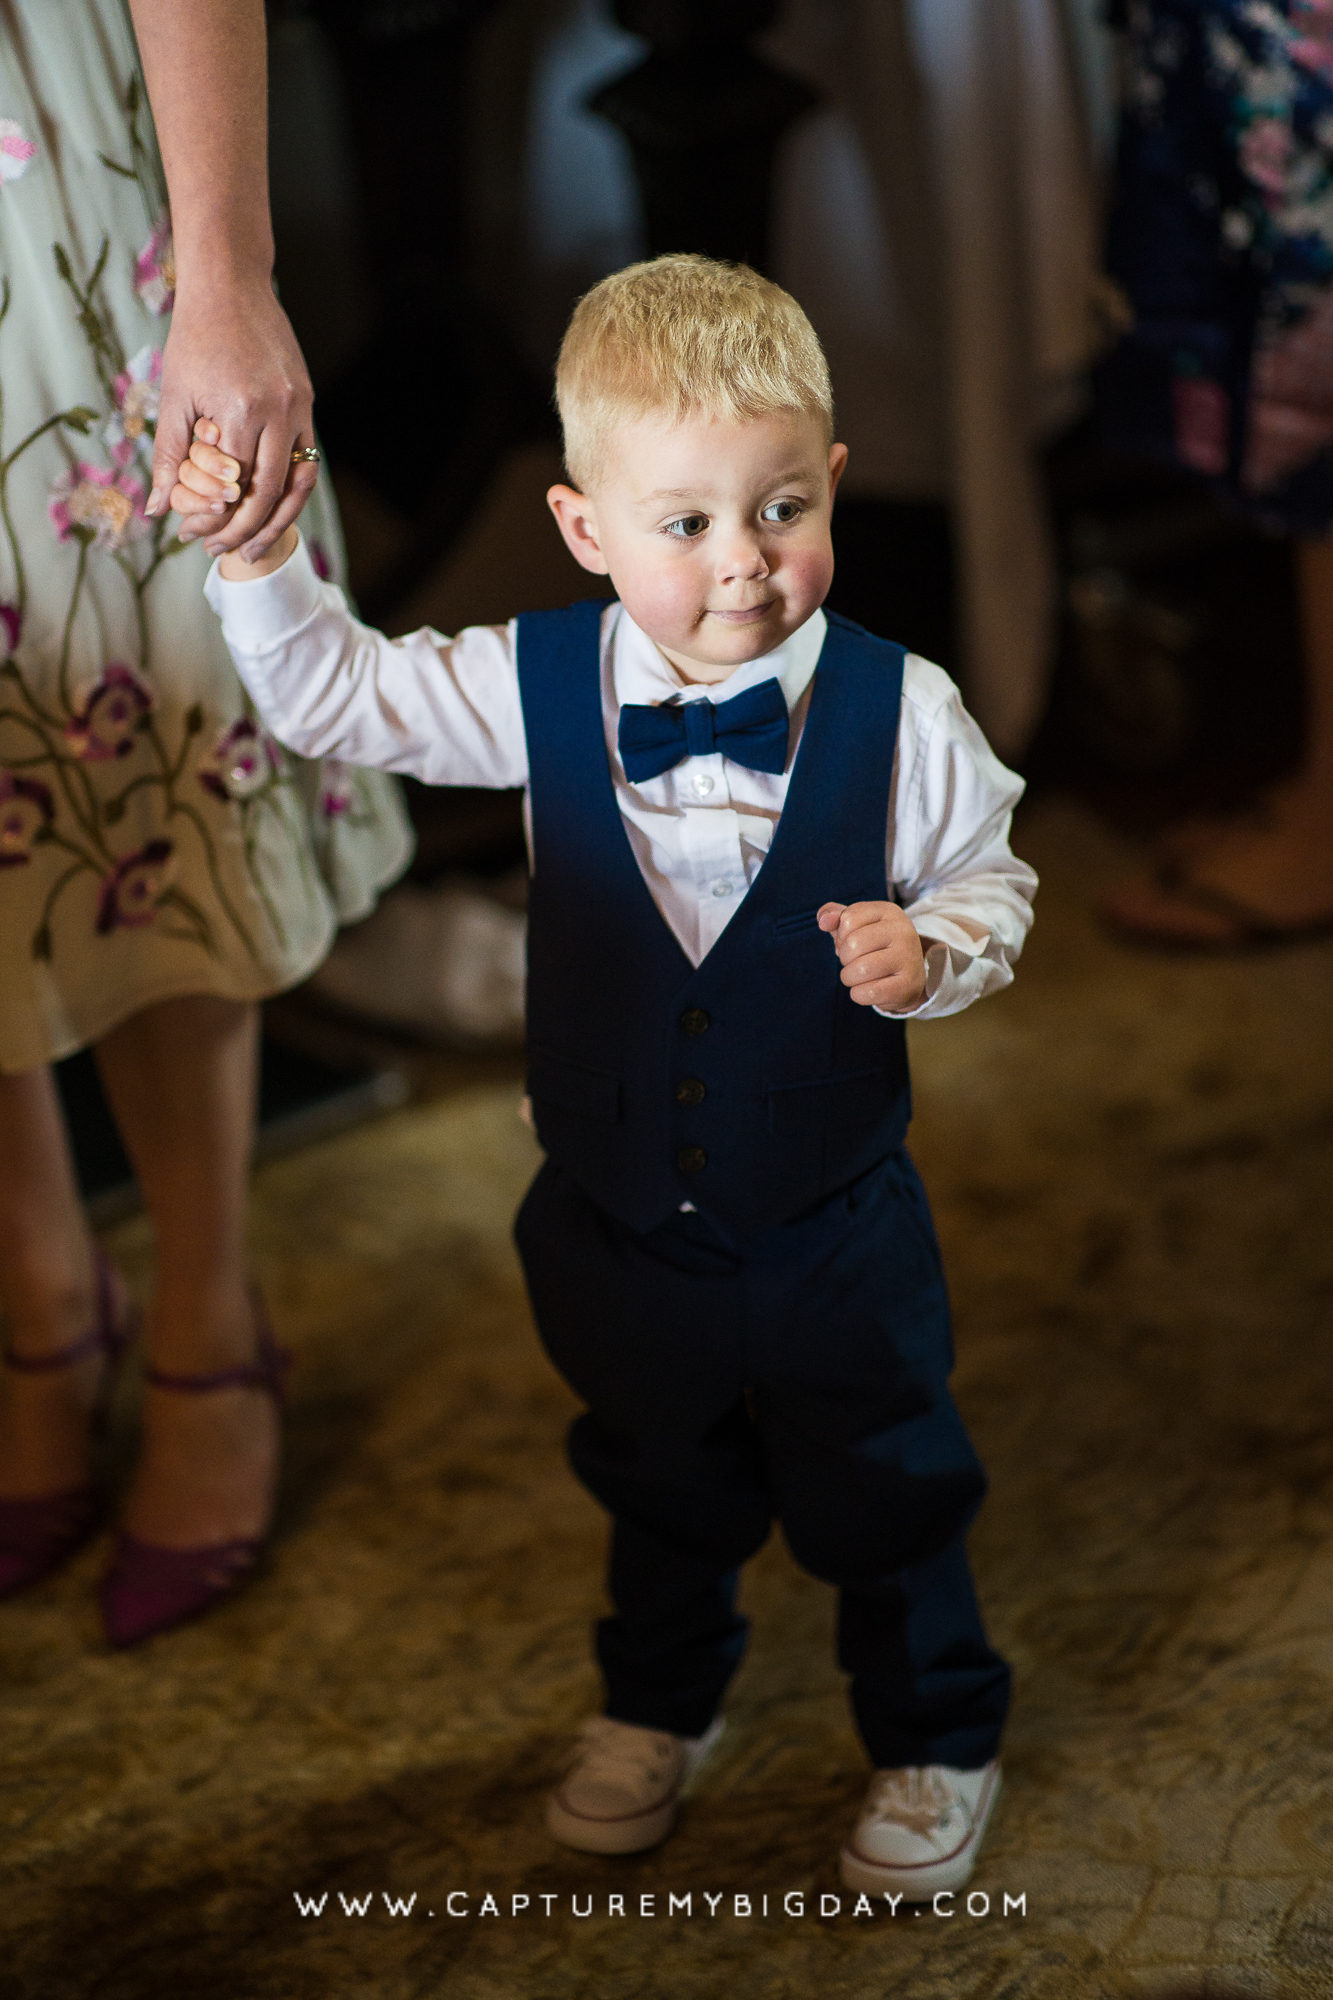 toddler in suit